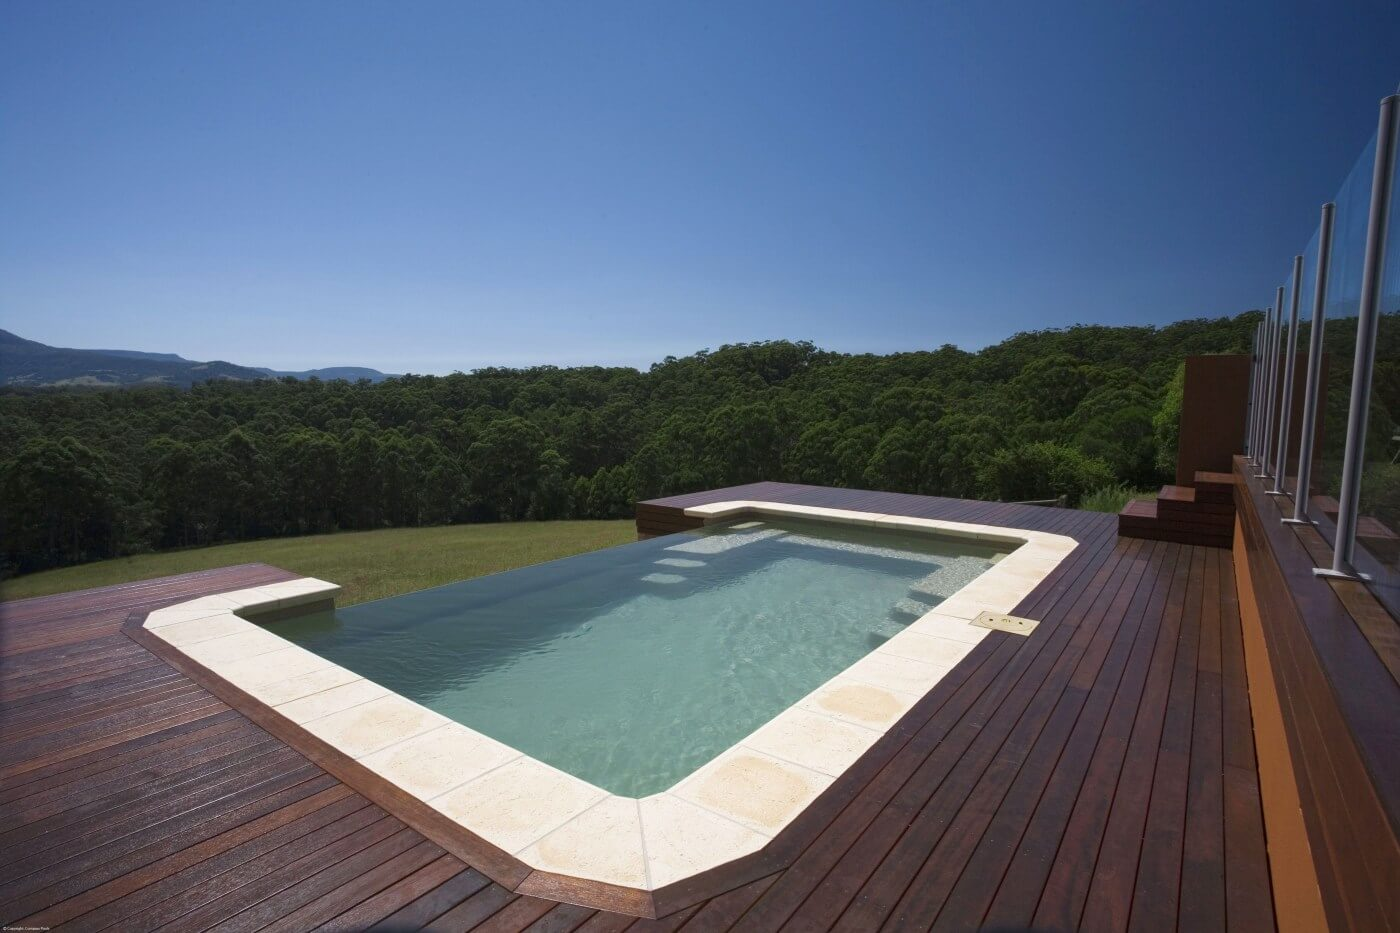 Infinity Pool Cost Why It S Worth It Compass Pools